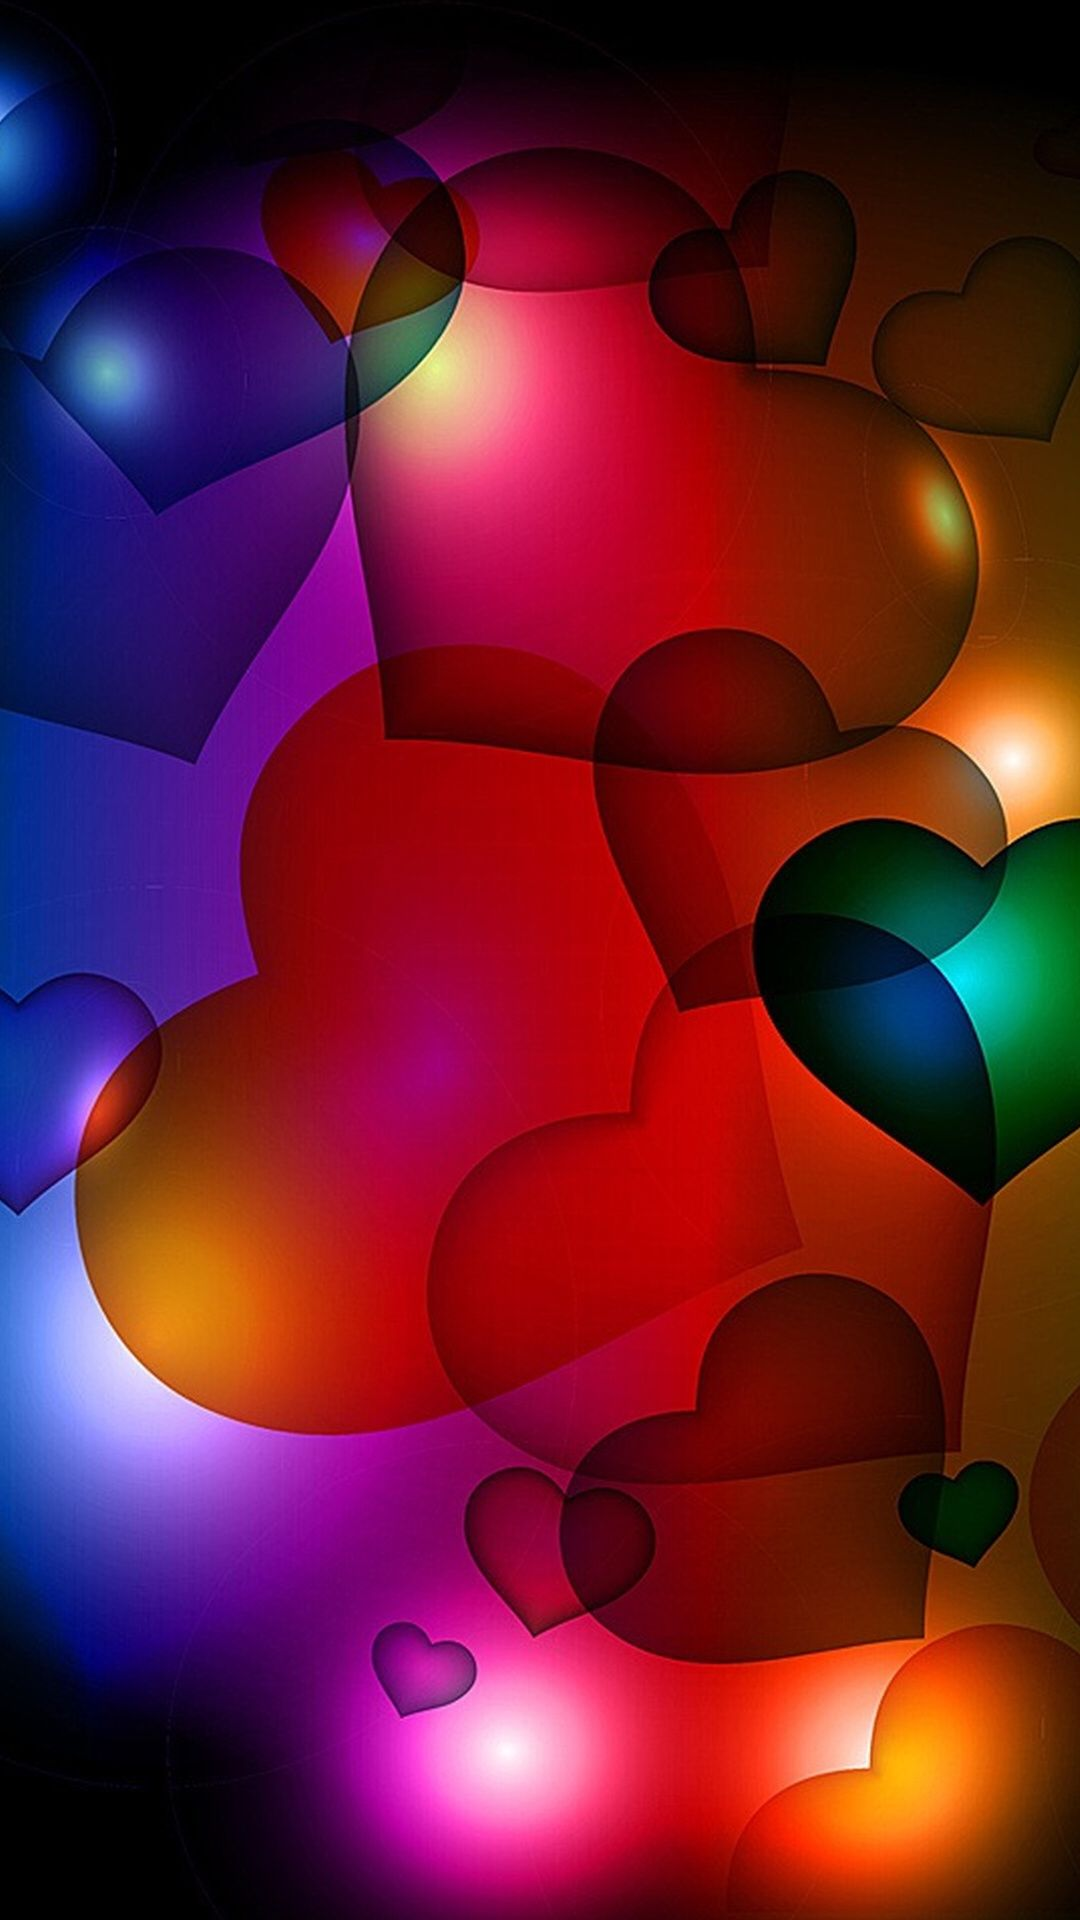 Check Out This Wallpaper For Your Iphone Http Zedge Net W10582792 Src Wps Ios V 1 0 1 Via Valentines Wallpaper Iphone Valentines Wallpaper Heart Wallpaper